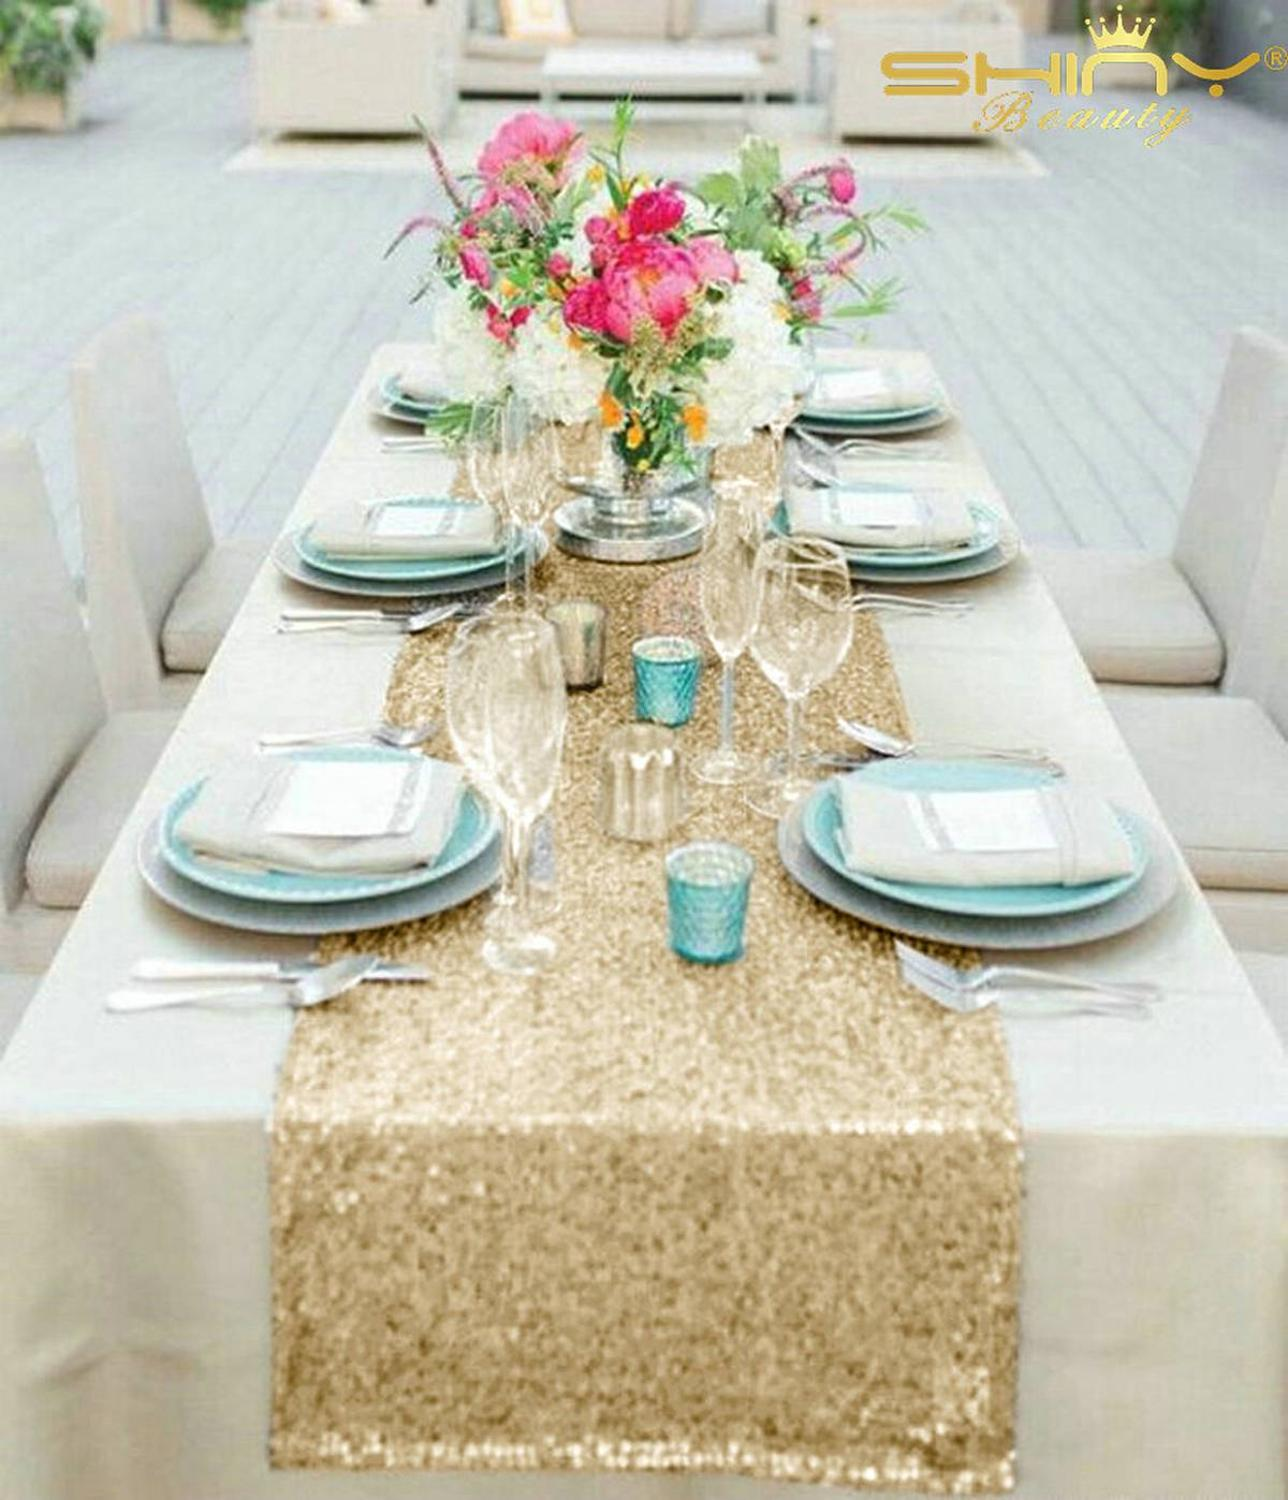 Glitter Table Runner 12x156 Inch Light Gold Sequin Table Runners Long Table Decoration For Banquet New Year Table Runner-M1012